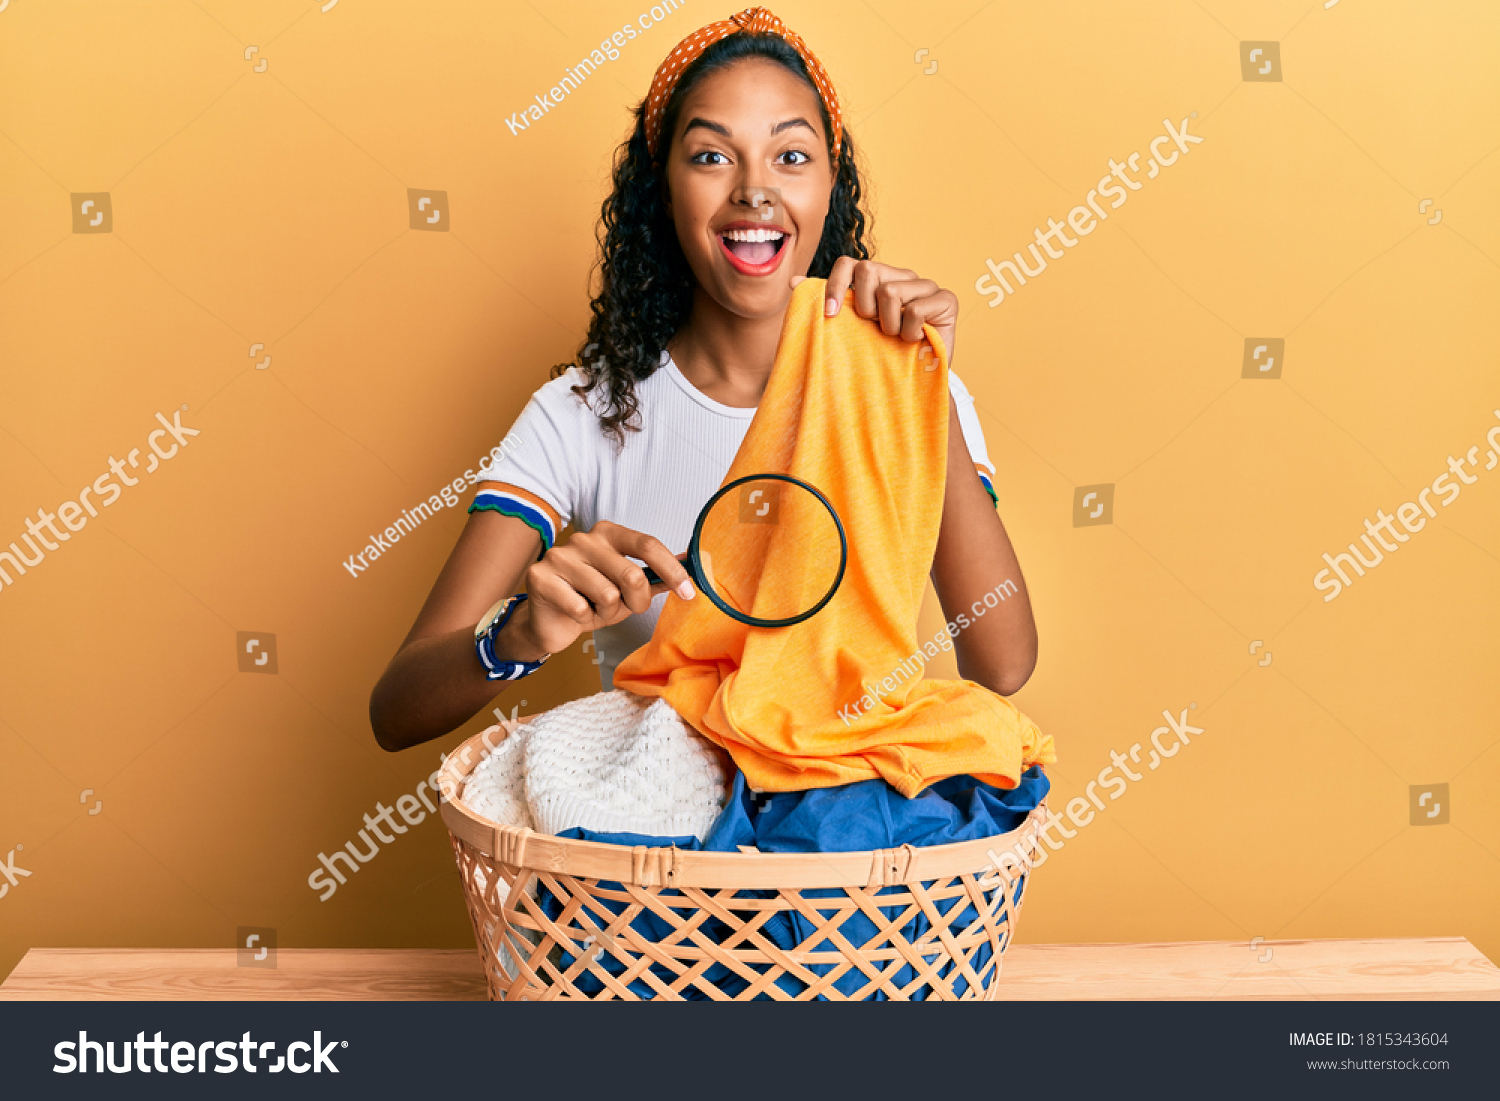 Young african american girl holding magnifying glass looking for stain at clothes celebrating crazy and amazed for success with open eyes screaming excited.  #1815343604